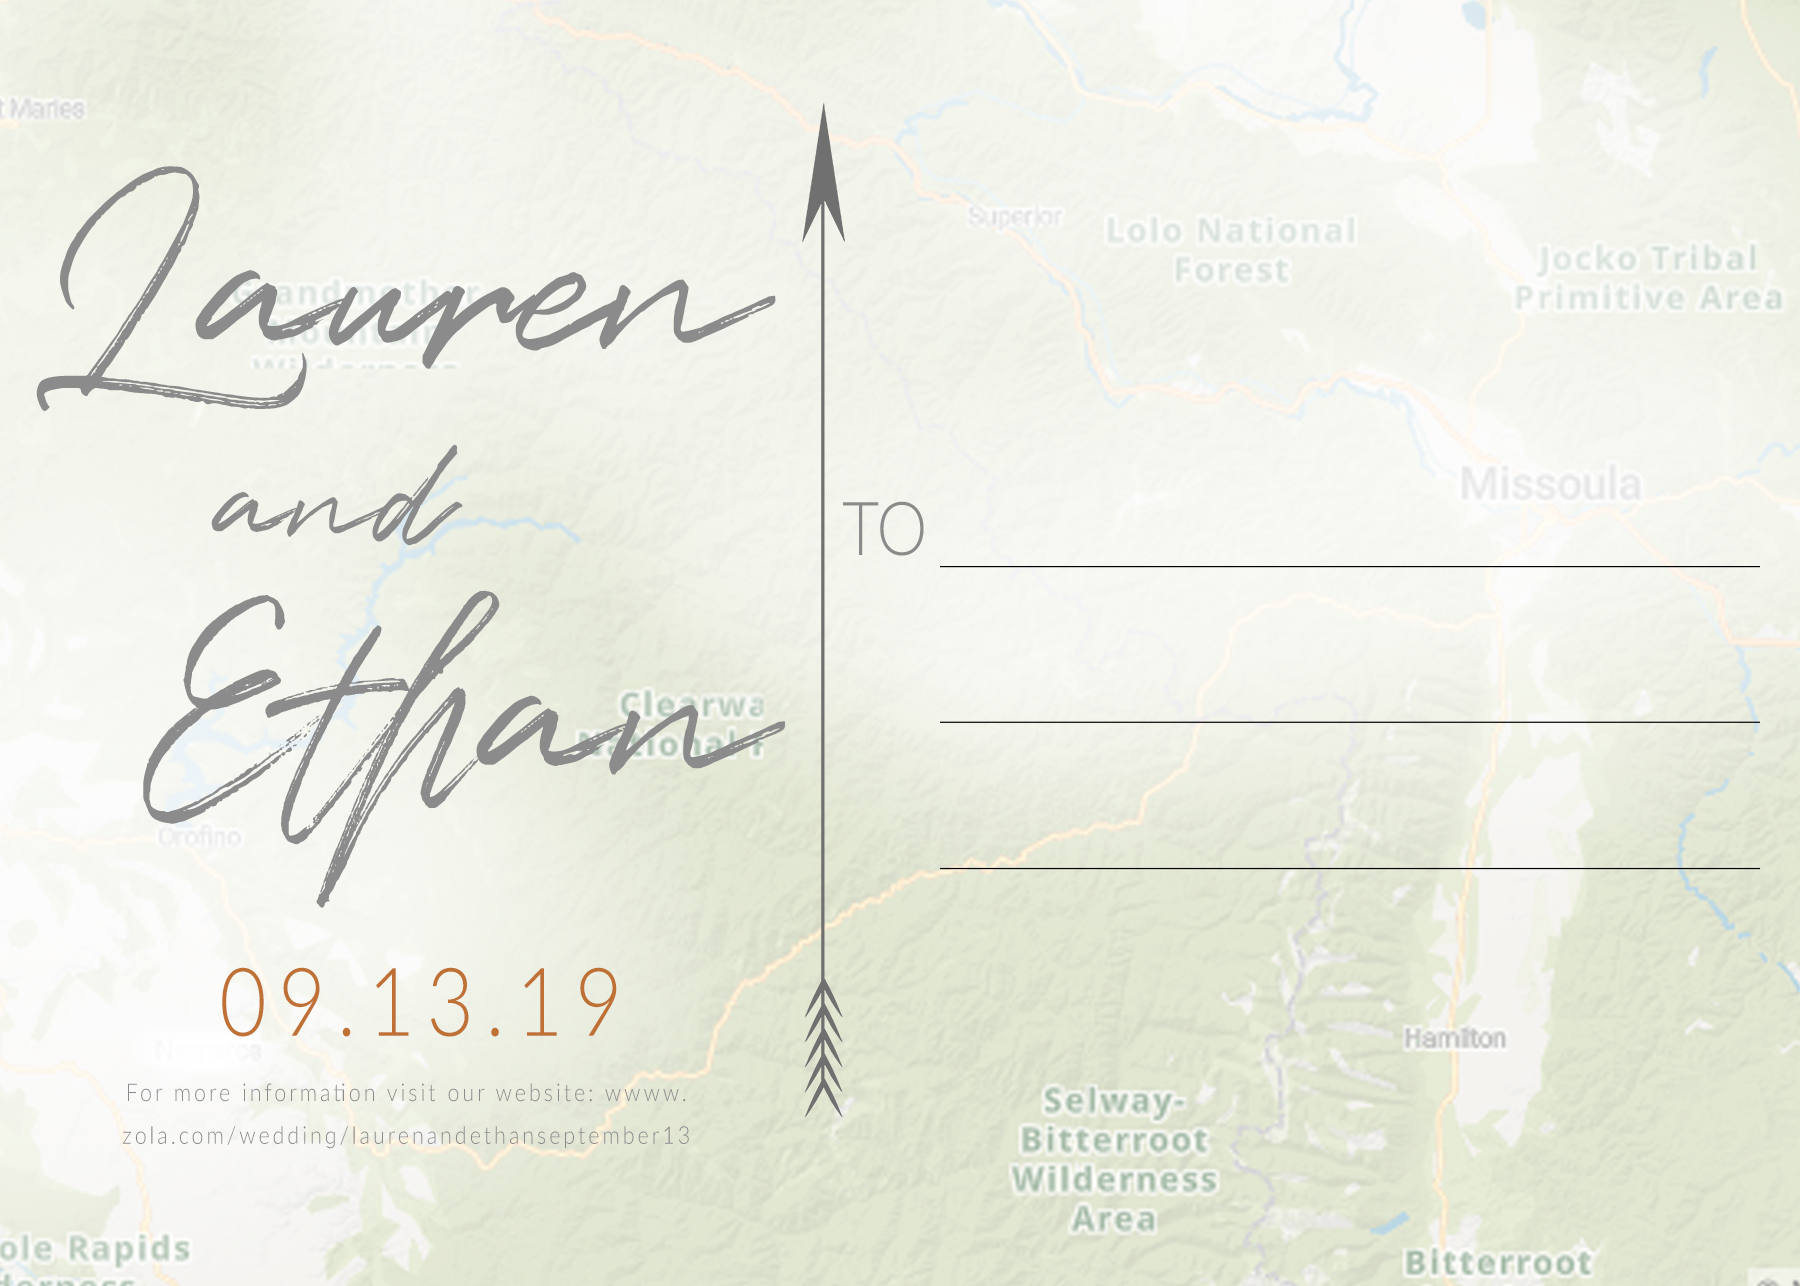 Save the Date_Lauren & Ethan_back 1_PRINT.jpg